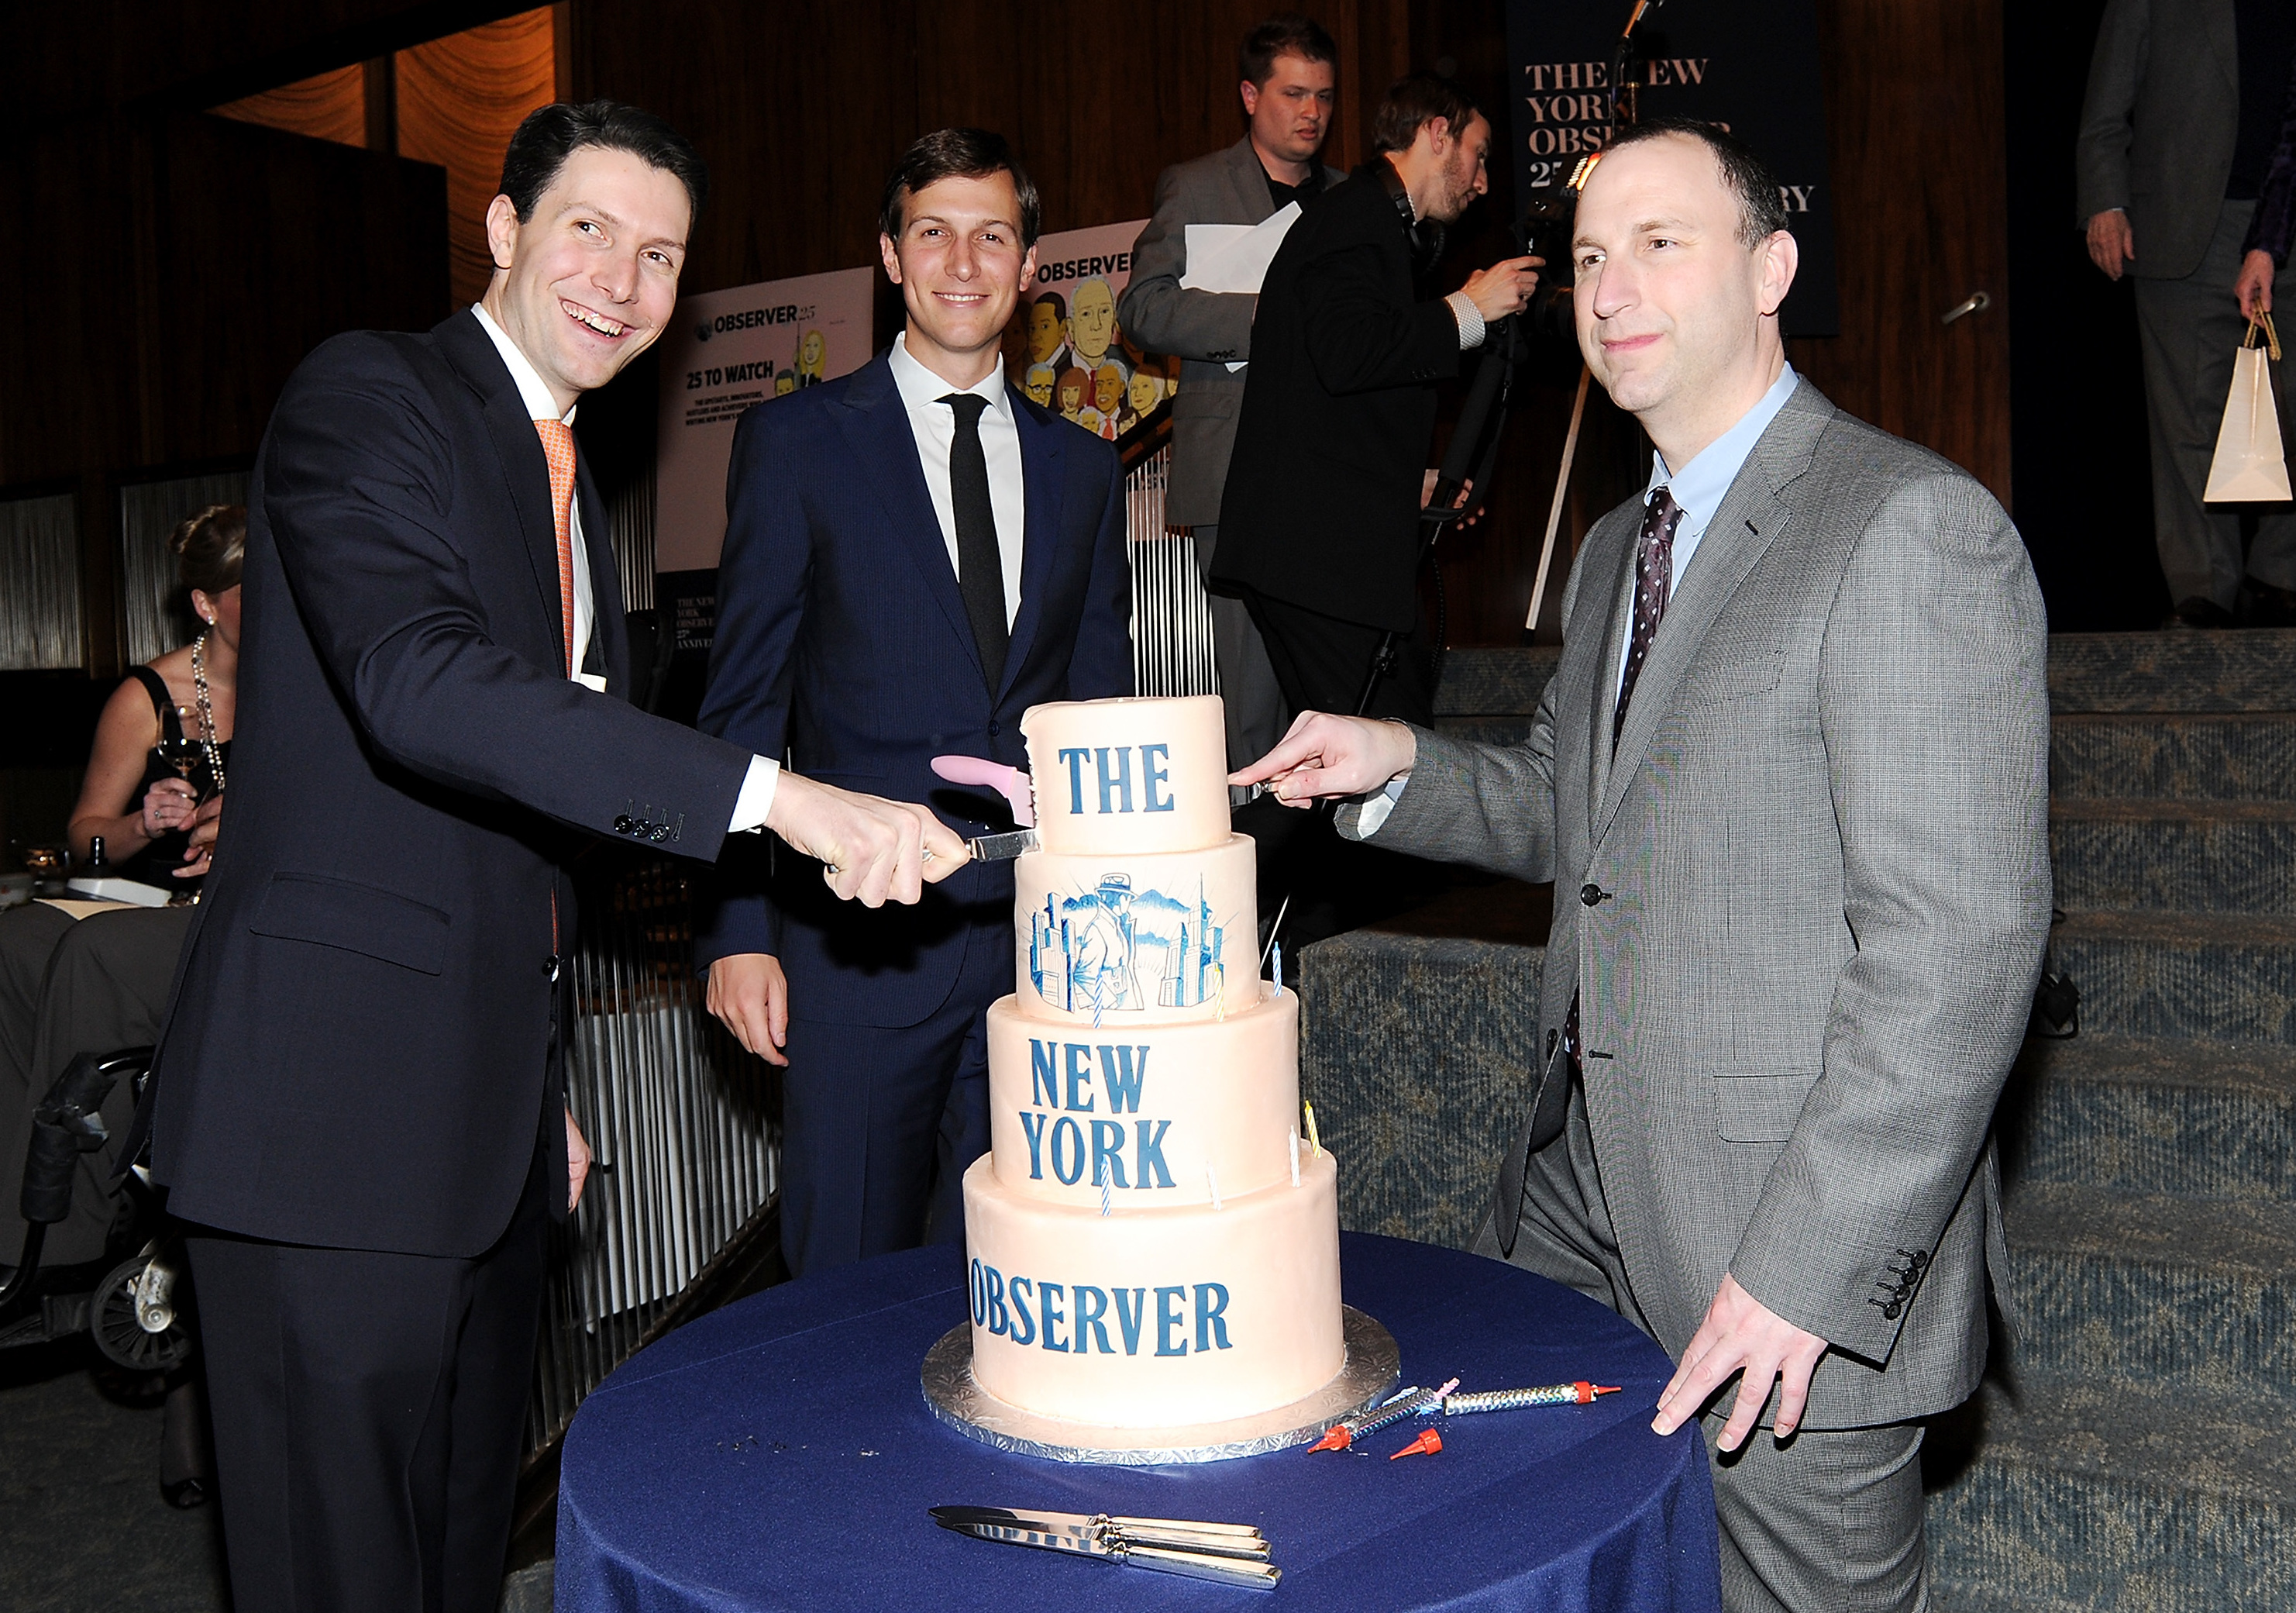 New York Observer publisher Jared Kushner (center), along with CEO Joseph Meyer (left) and editor Ken Kurson, attends The New York Observer's 25th anniversary party in New York in 2013. Evan Agostini/Invision/AP.